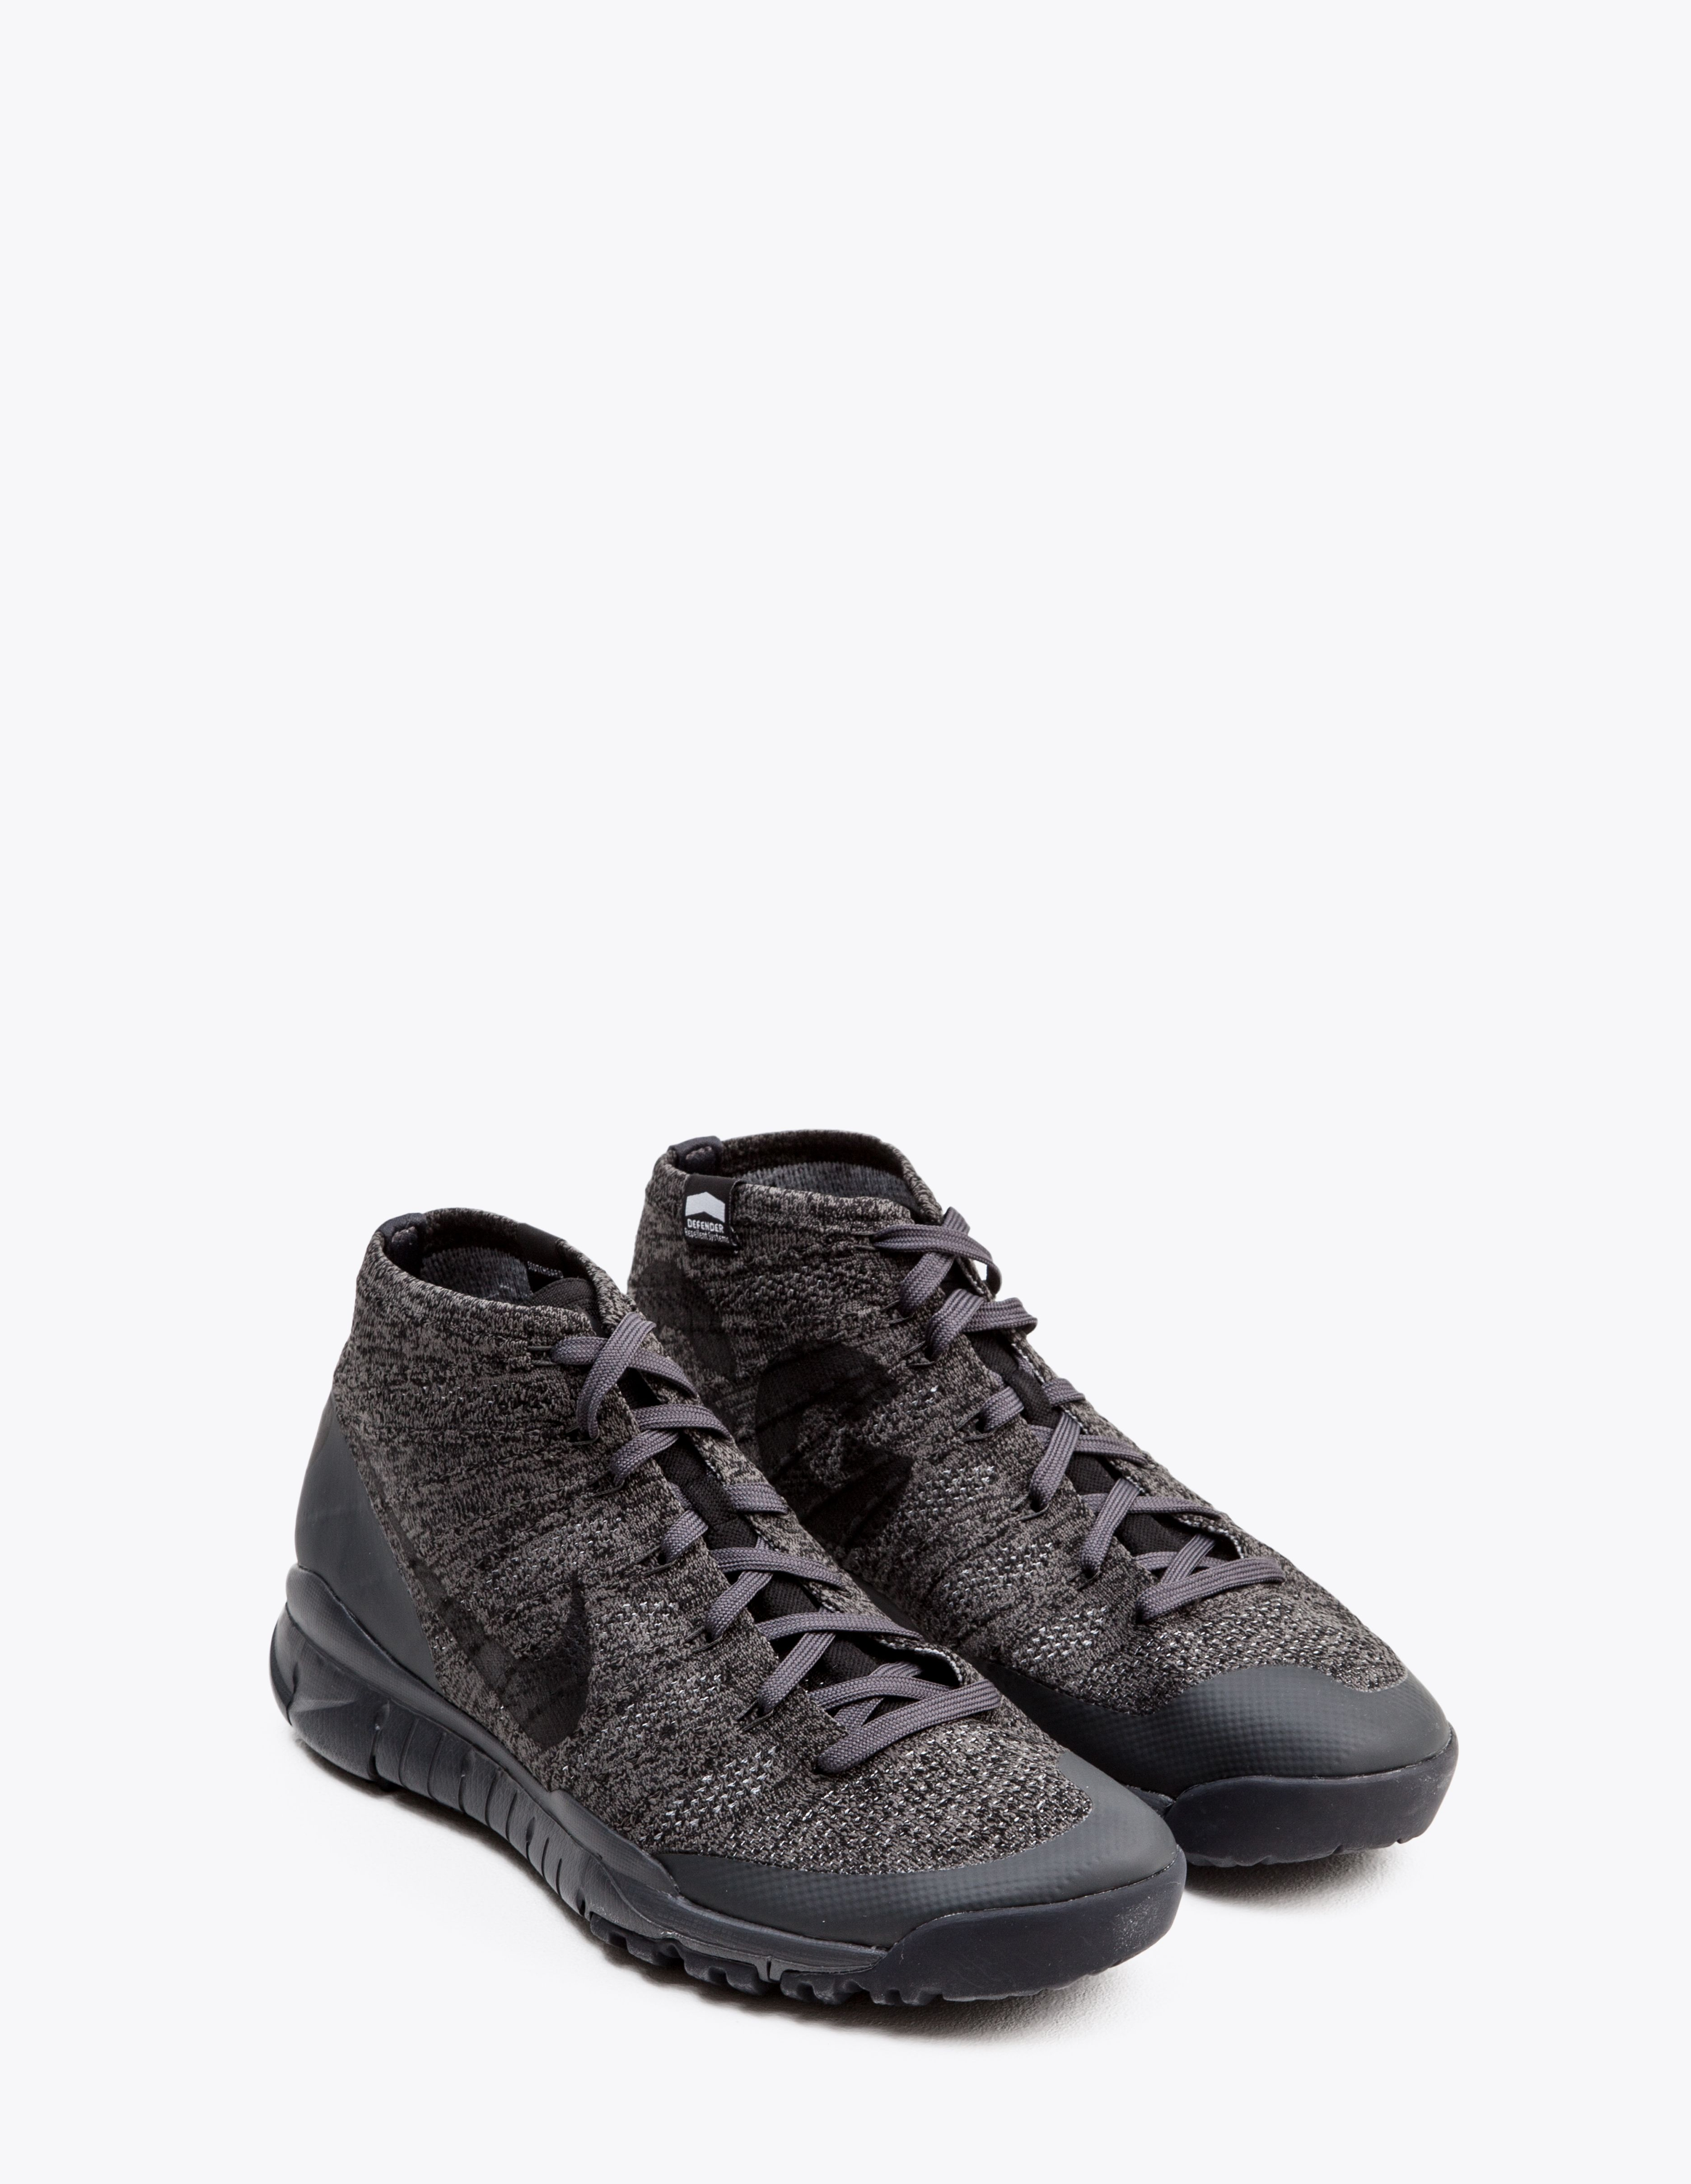 reputable site 79262 19d65 FLYKNIT TRAINER ACG SP ANTHRACITE 260 want Pinterest Flyknit 07917a